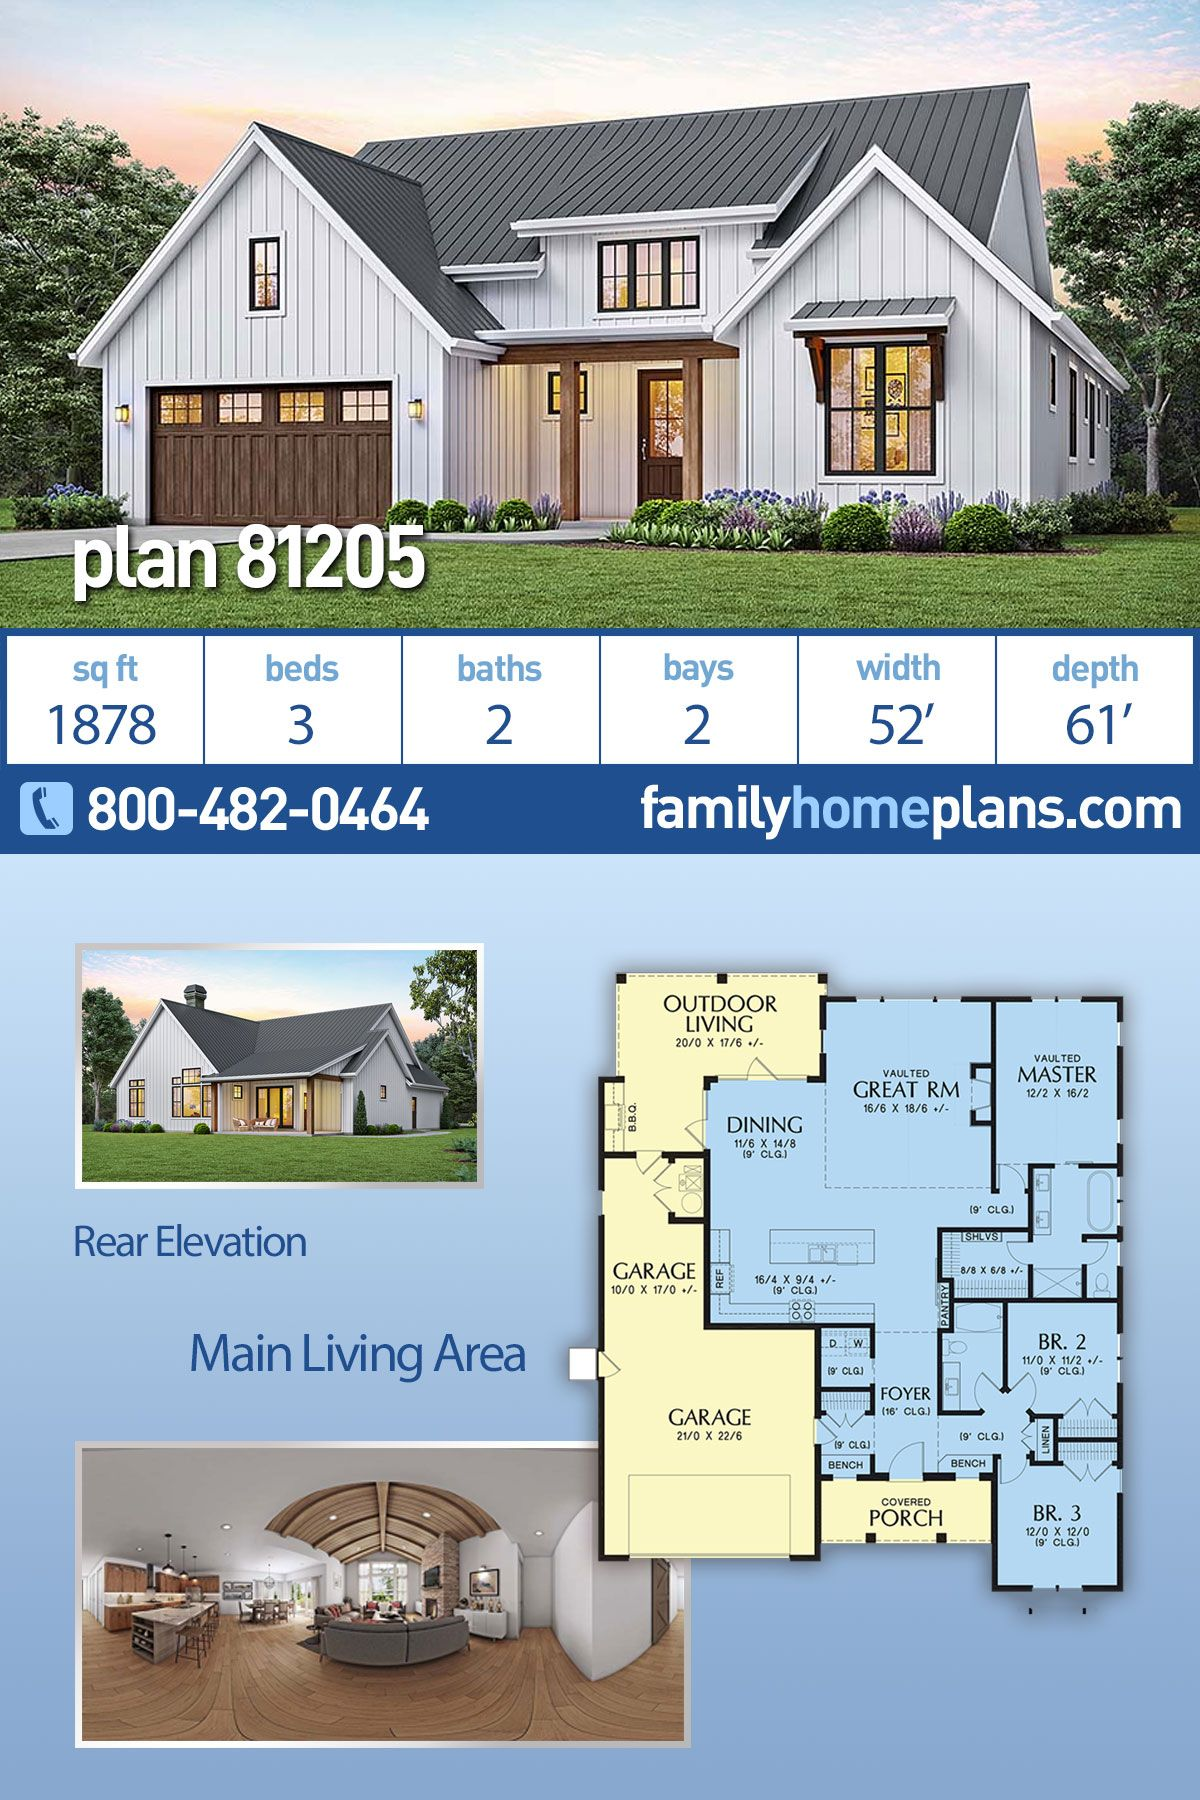 Farmhouse Style House Plan 81205 With 3 Bed 2 Bath 2 Car Garage Modern Style House Plans Country House Design Farmhouse Style House